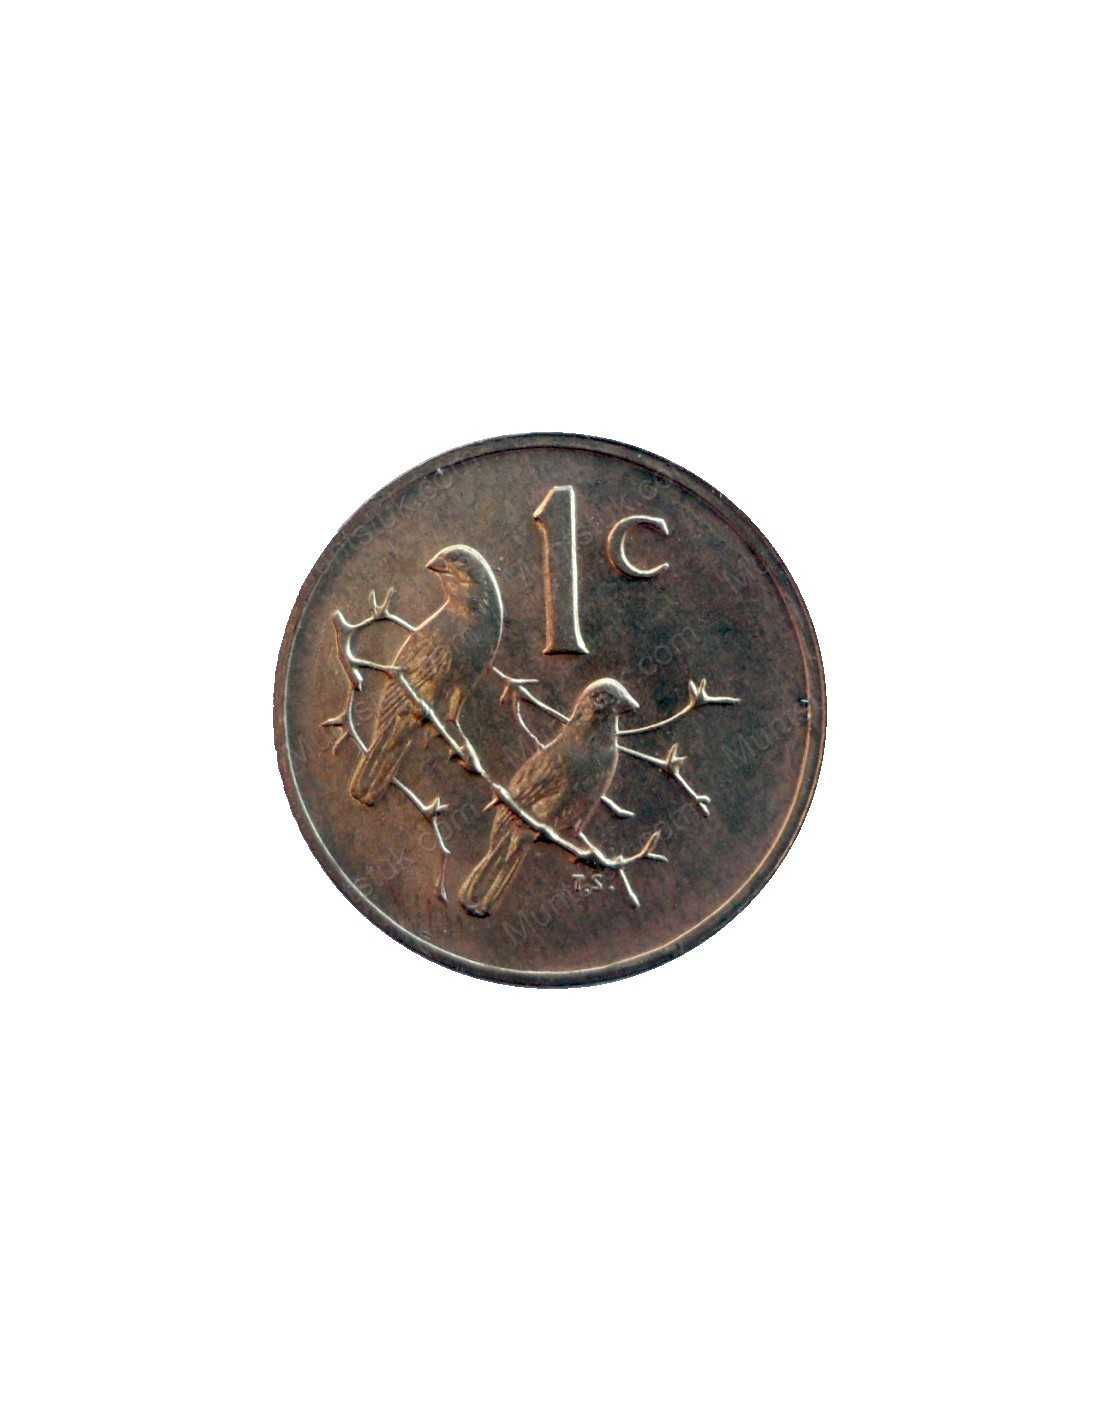 One Cent South Africa 1979 Bronze 46 South